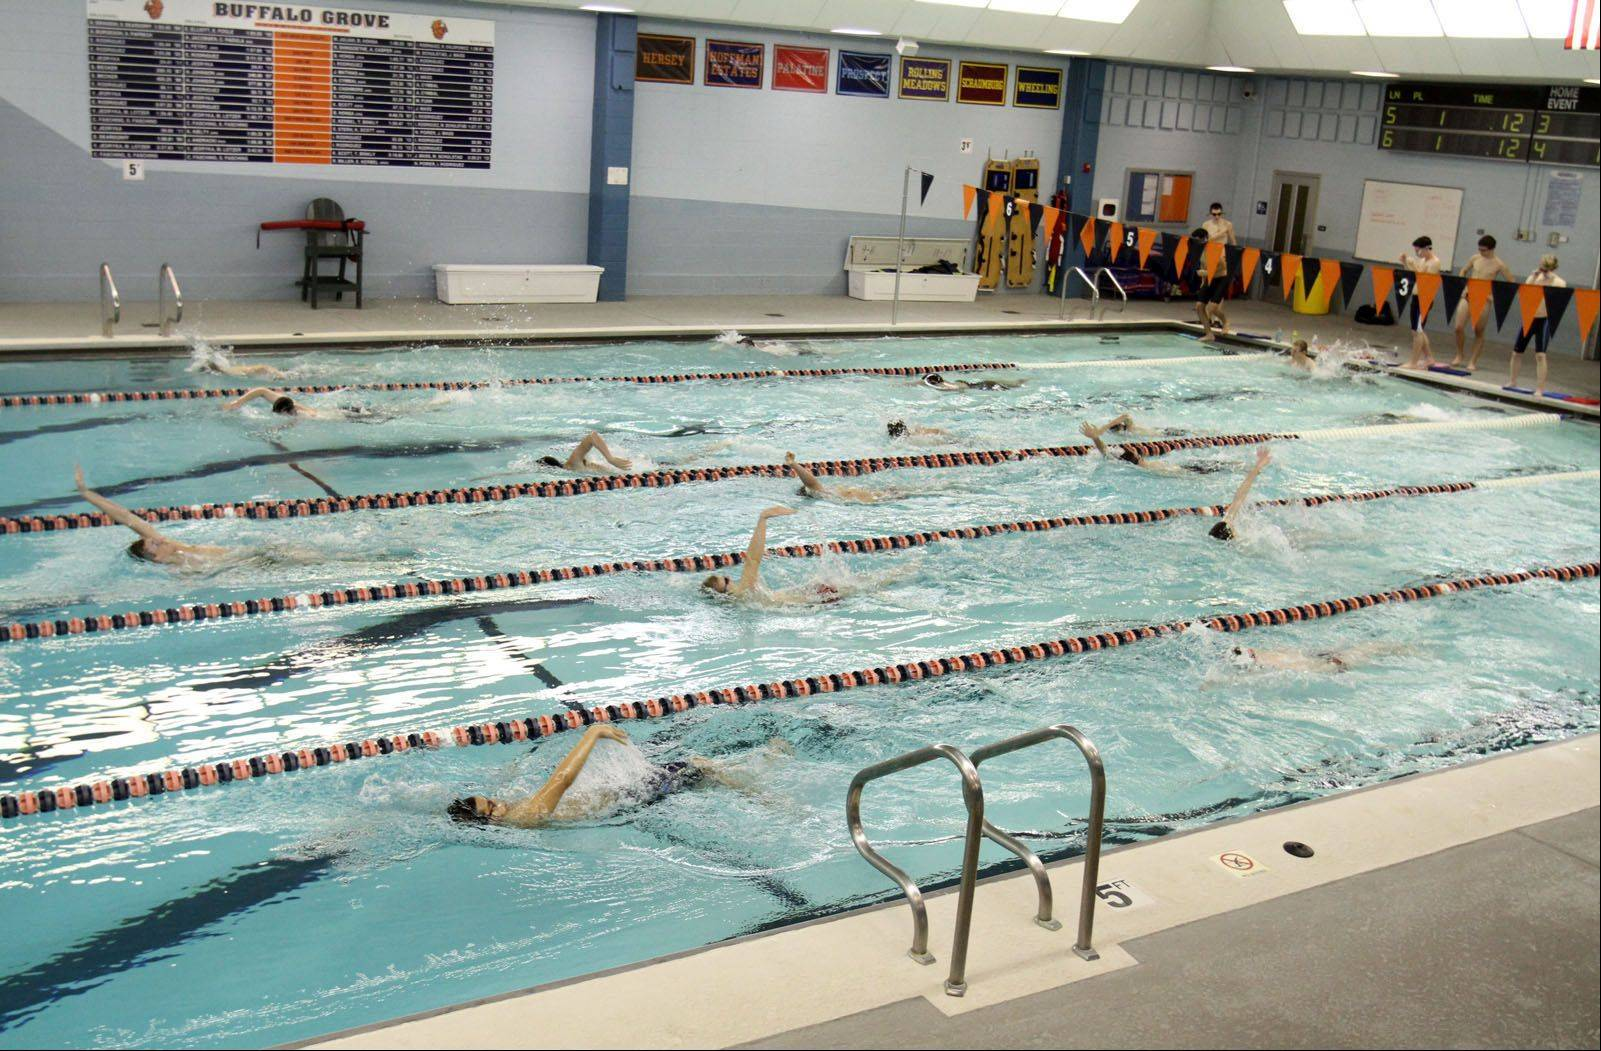 Buffalo Grove High School is one of just three Northwest Suburban High School District 214 schools with its own pool, and that facility is closing for renovations. The lack of swimming opportunities has some district parents upset.